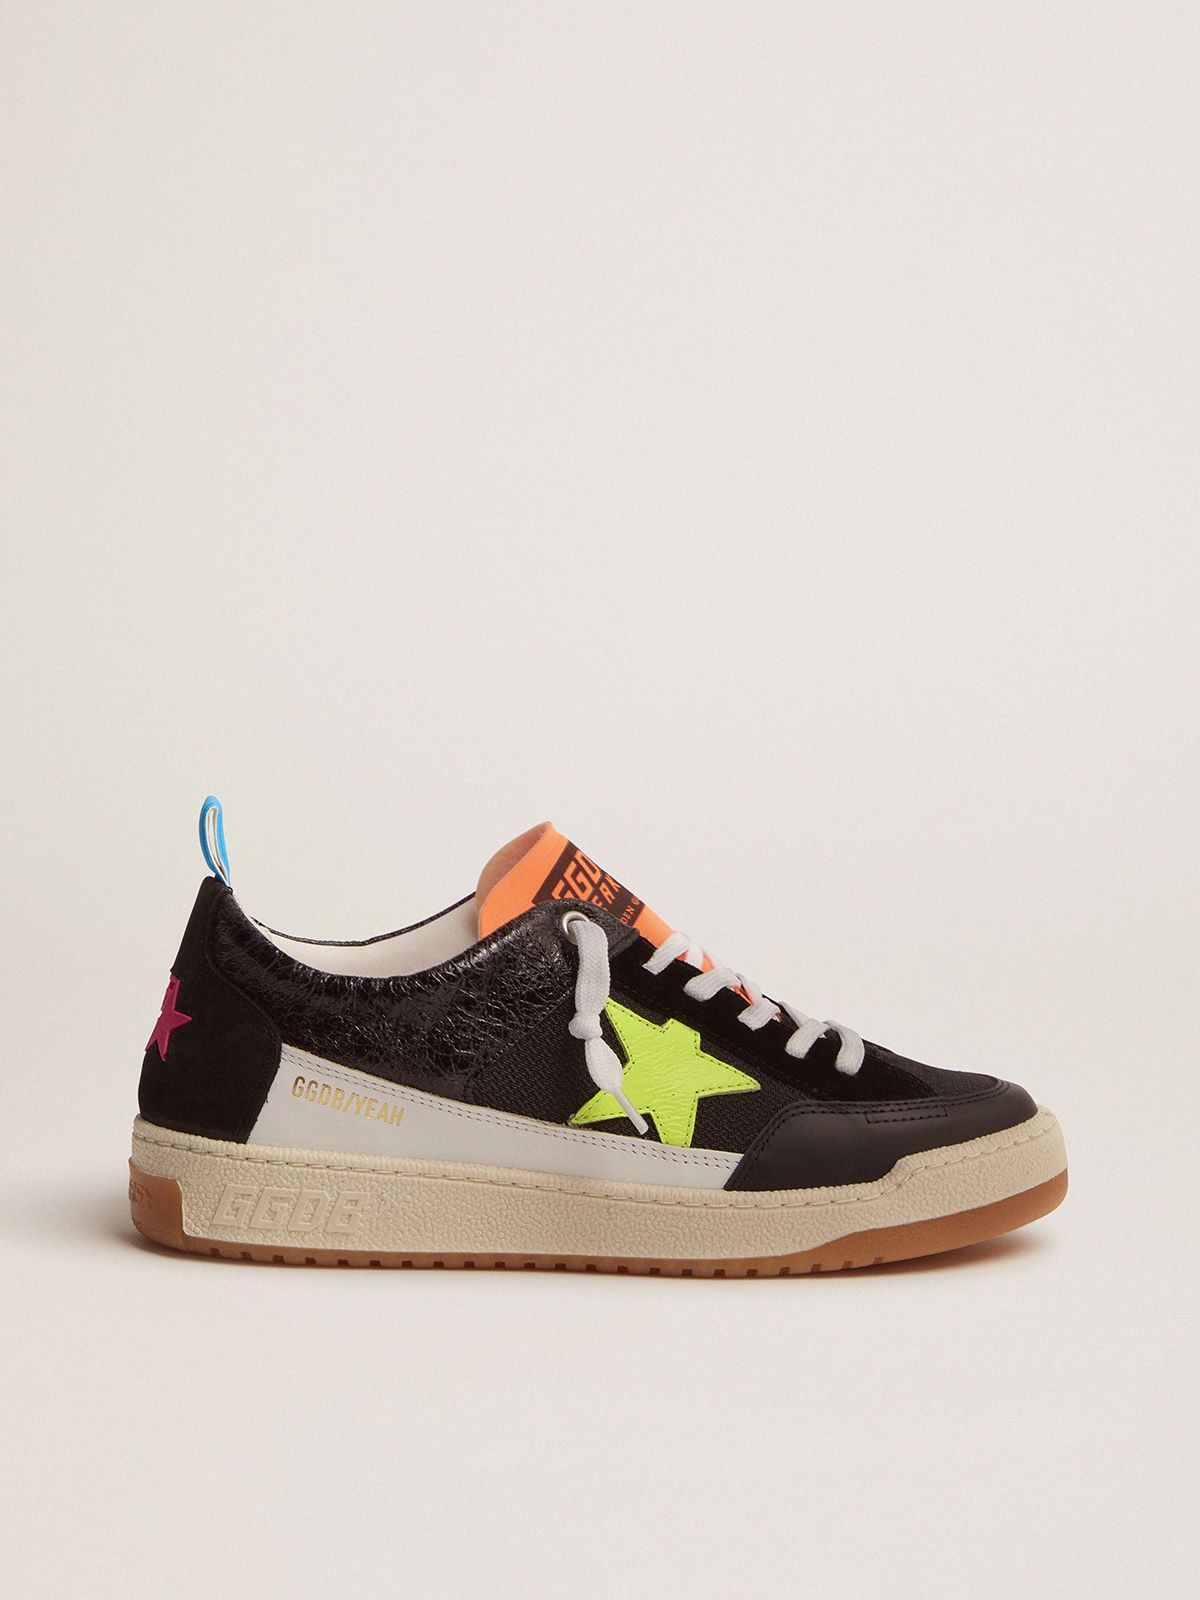 Sneakers Yeah donna nere con stella giallo fluo